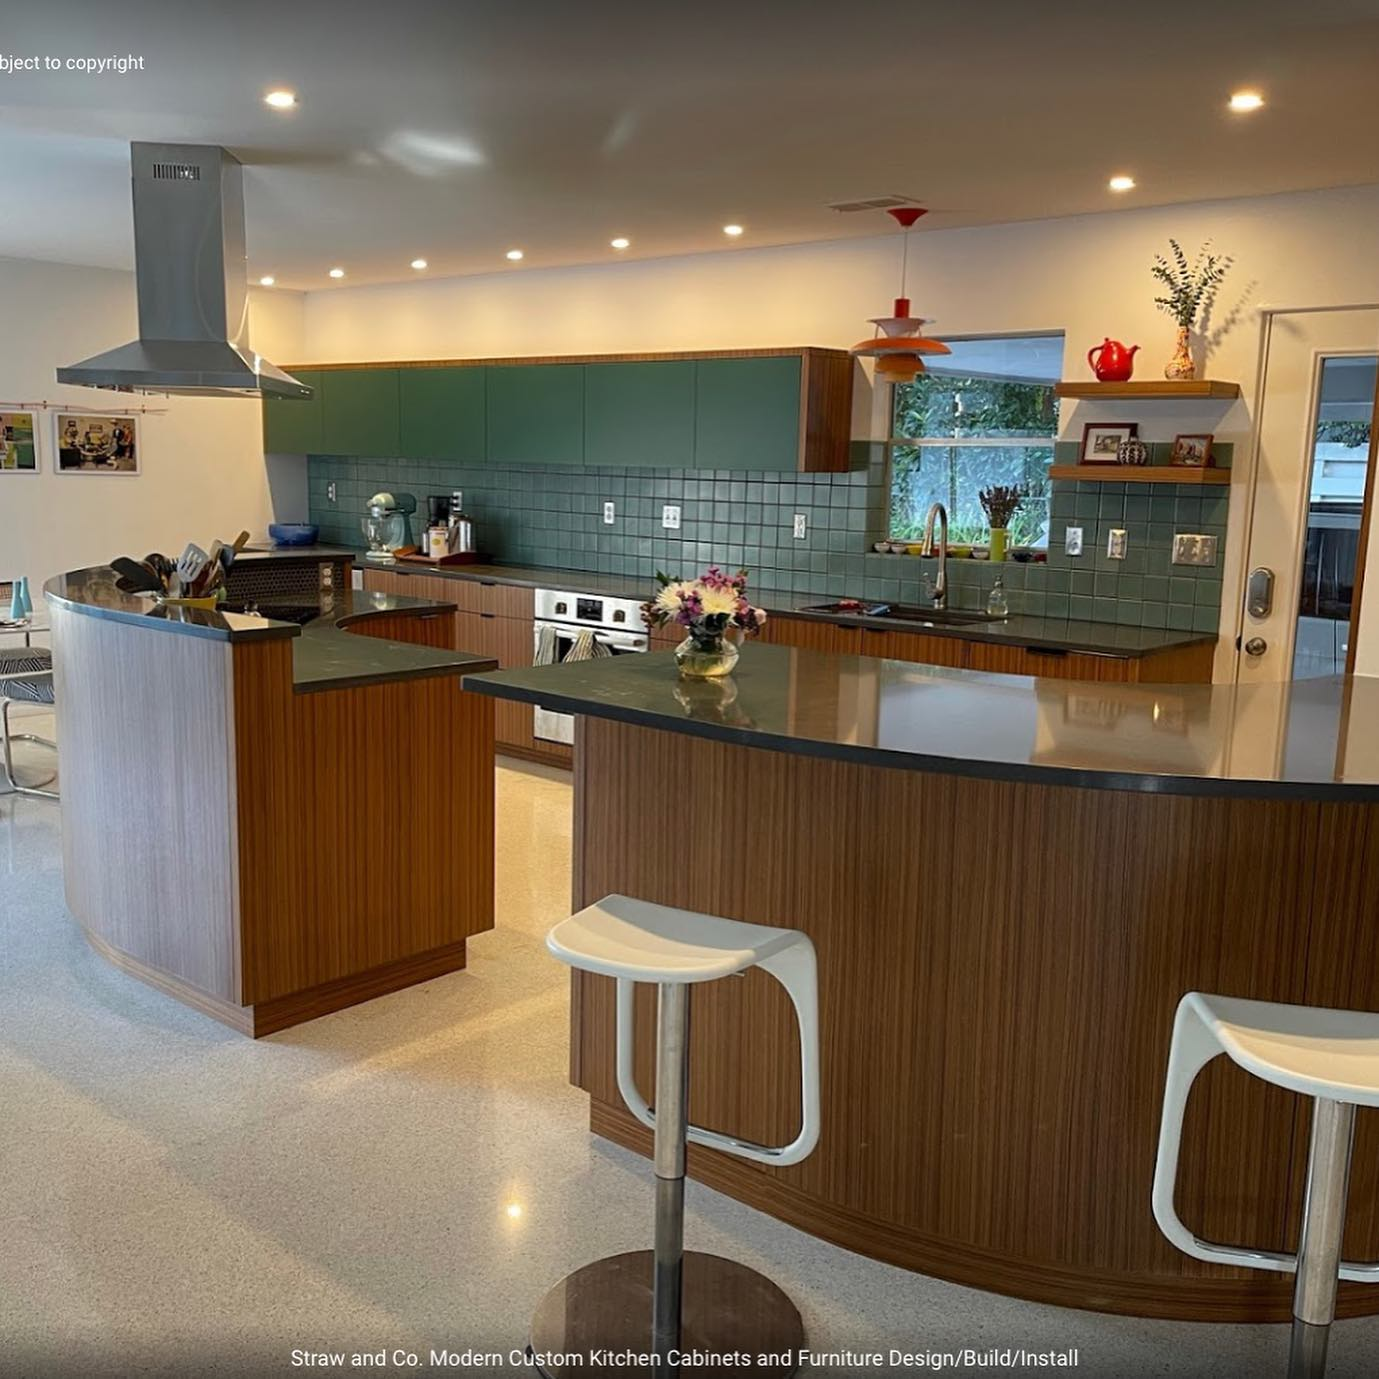 Client just sent us a couple of shots of their new teak kitchen. This is a super home. I look forward to having it professionally shot and including it in the portfolio. Curved back  and face cabinets, quarter sawn teak, matched and sequenced grain.